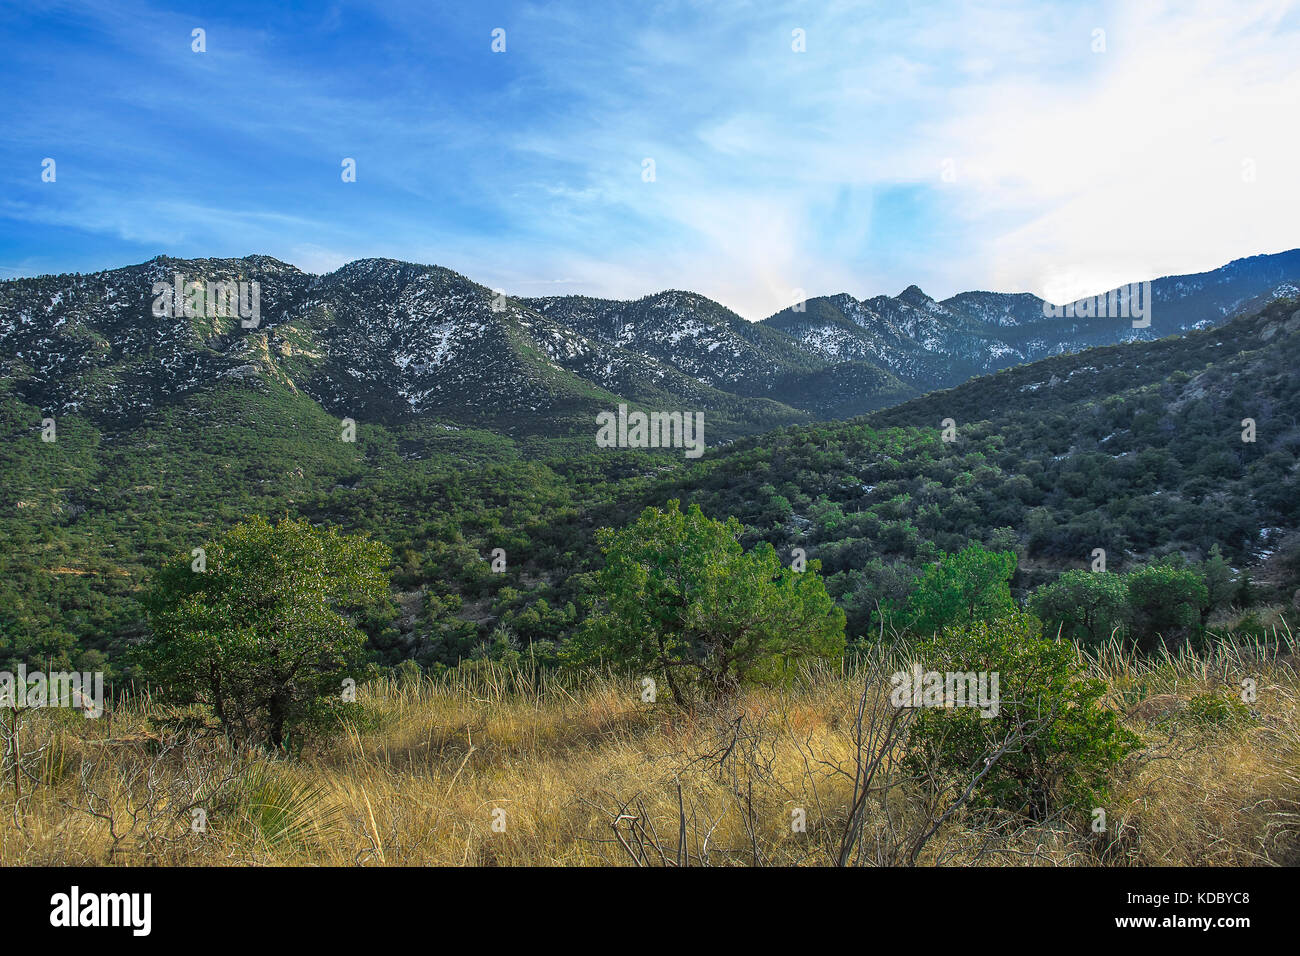 East Face of Mount Graham off Swift Trail Junction near Safford, Arizona. Stock Photo